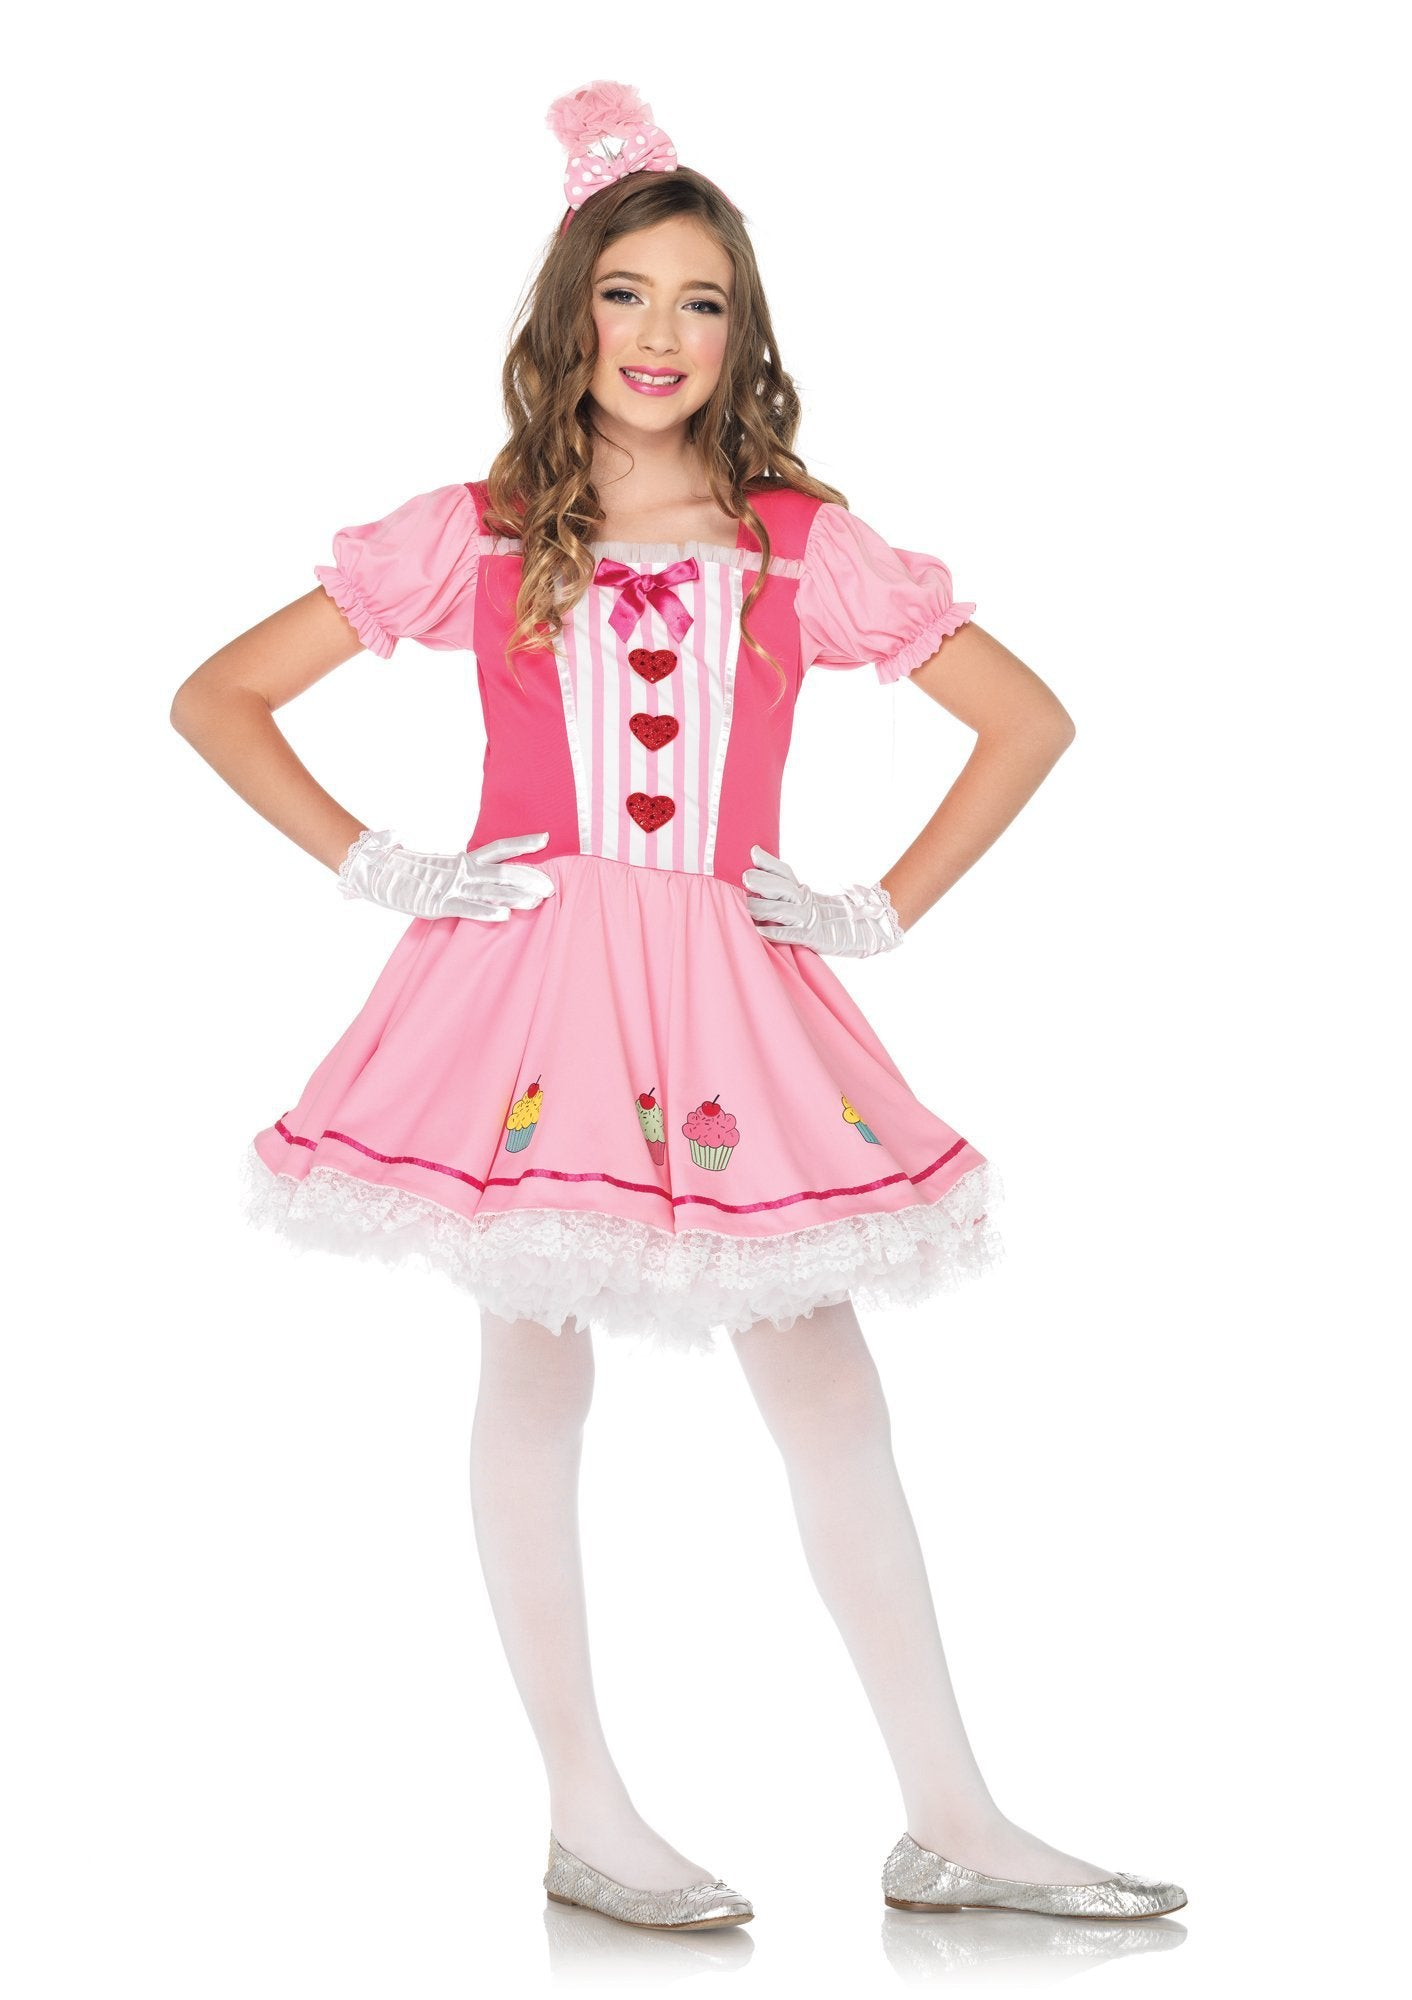 Leg Avenue Costumes LARGE / PINK Lil' Miss Cupcake Costume